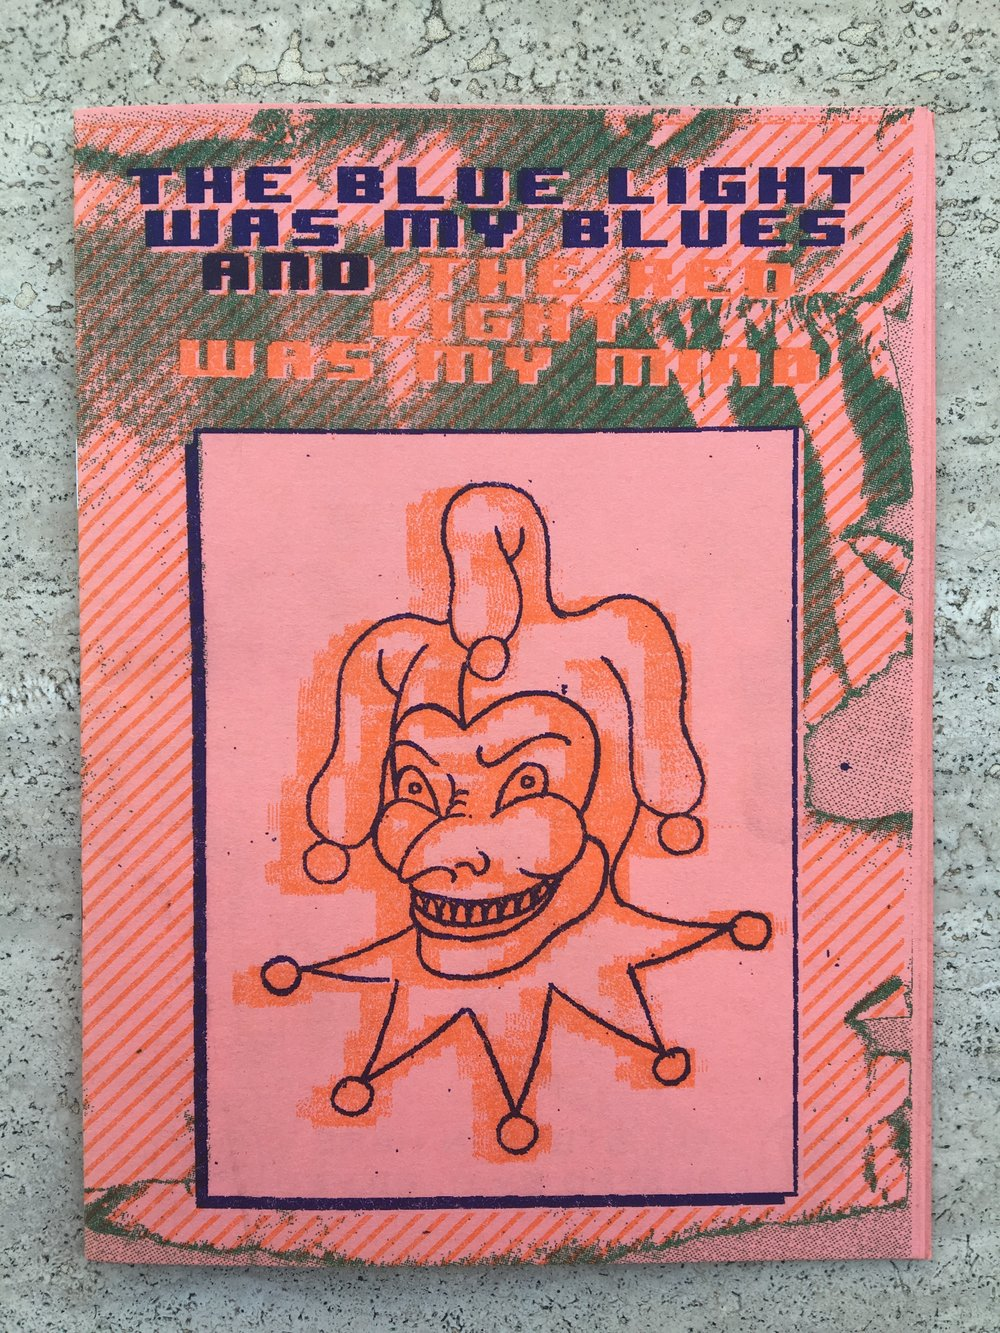 The Blue Light was my Blues, and the Red Light was my Mind by C. Bilyeu (Visual Malaise) - 12 pgSigned edition of 552018